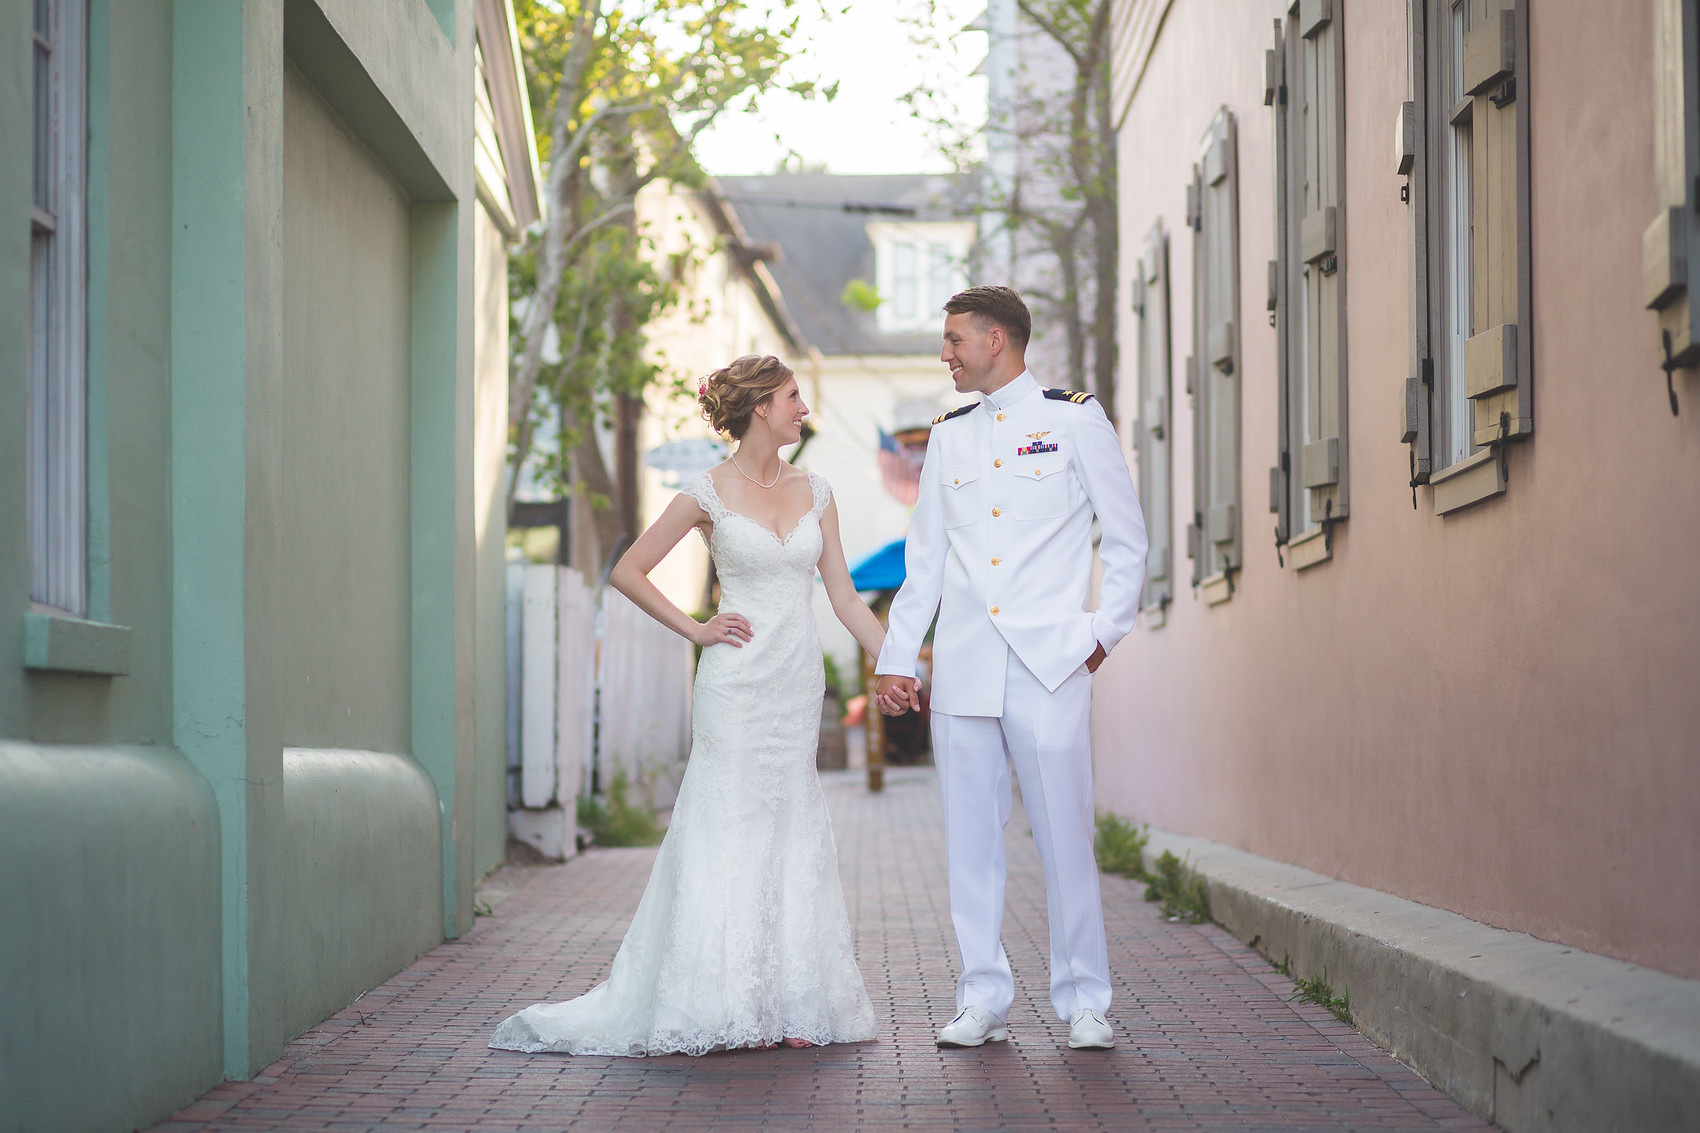 Adam-Szrmack-Bowing-the-white-room-st-augustine-wedding-photographer-85.jpg